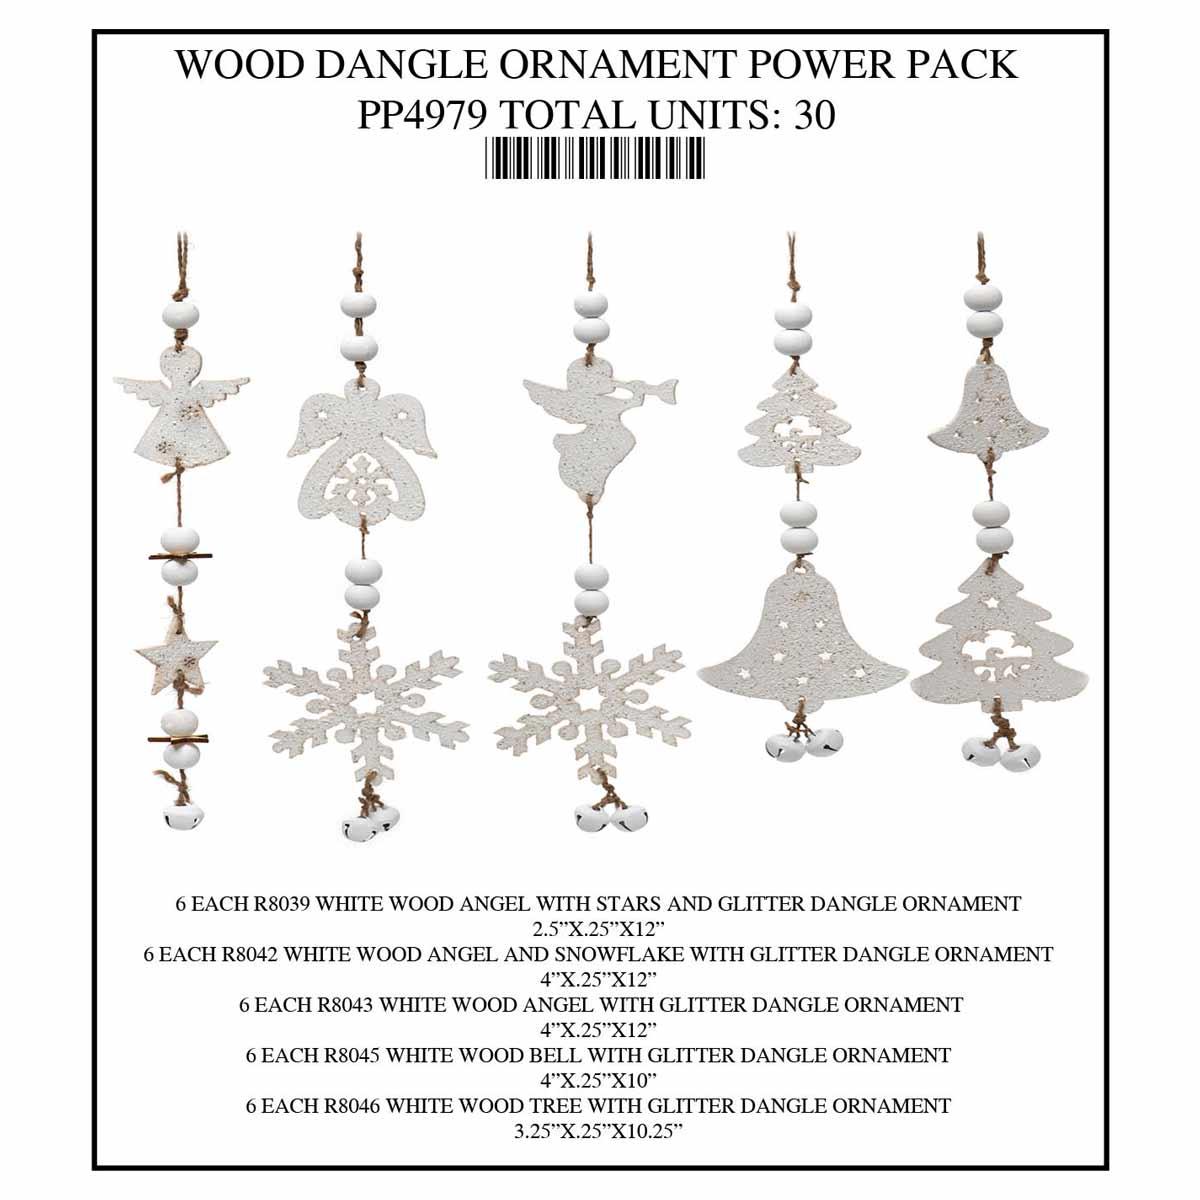 DANGLE ORNAMENT Power Pack 30 Units